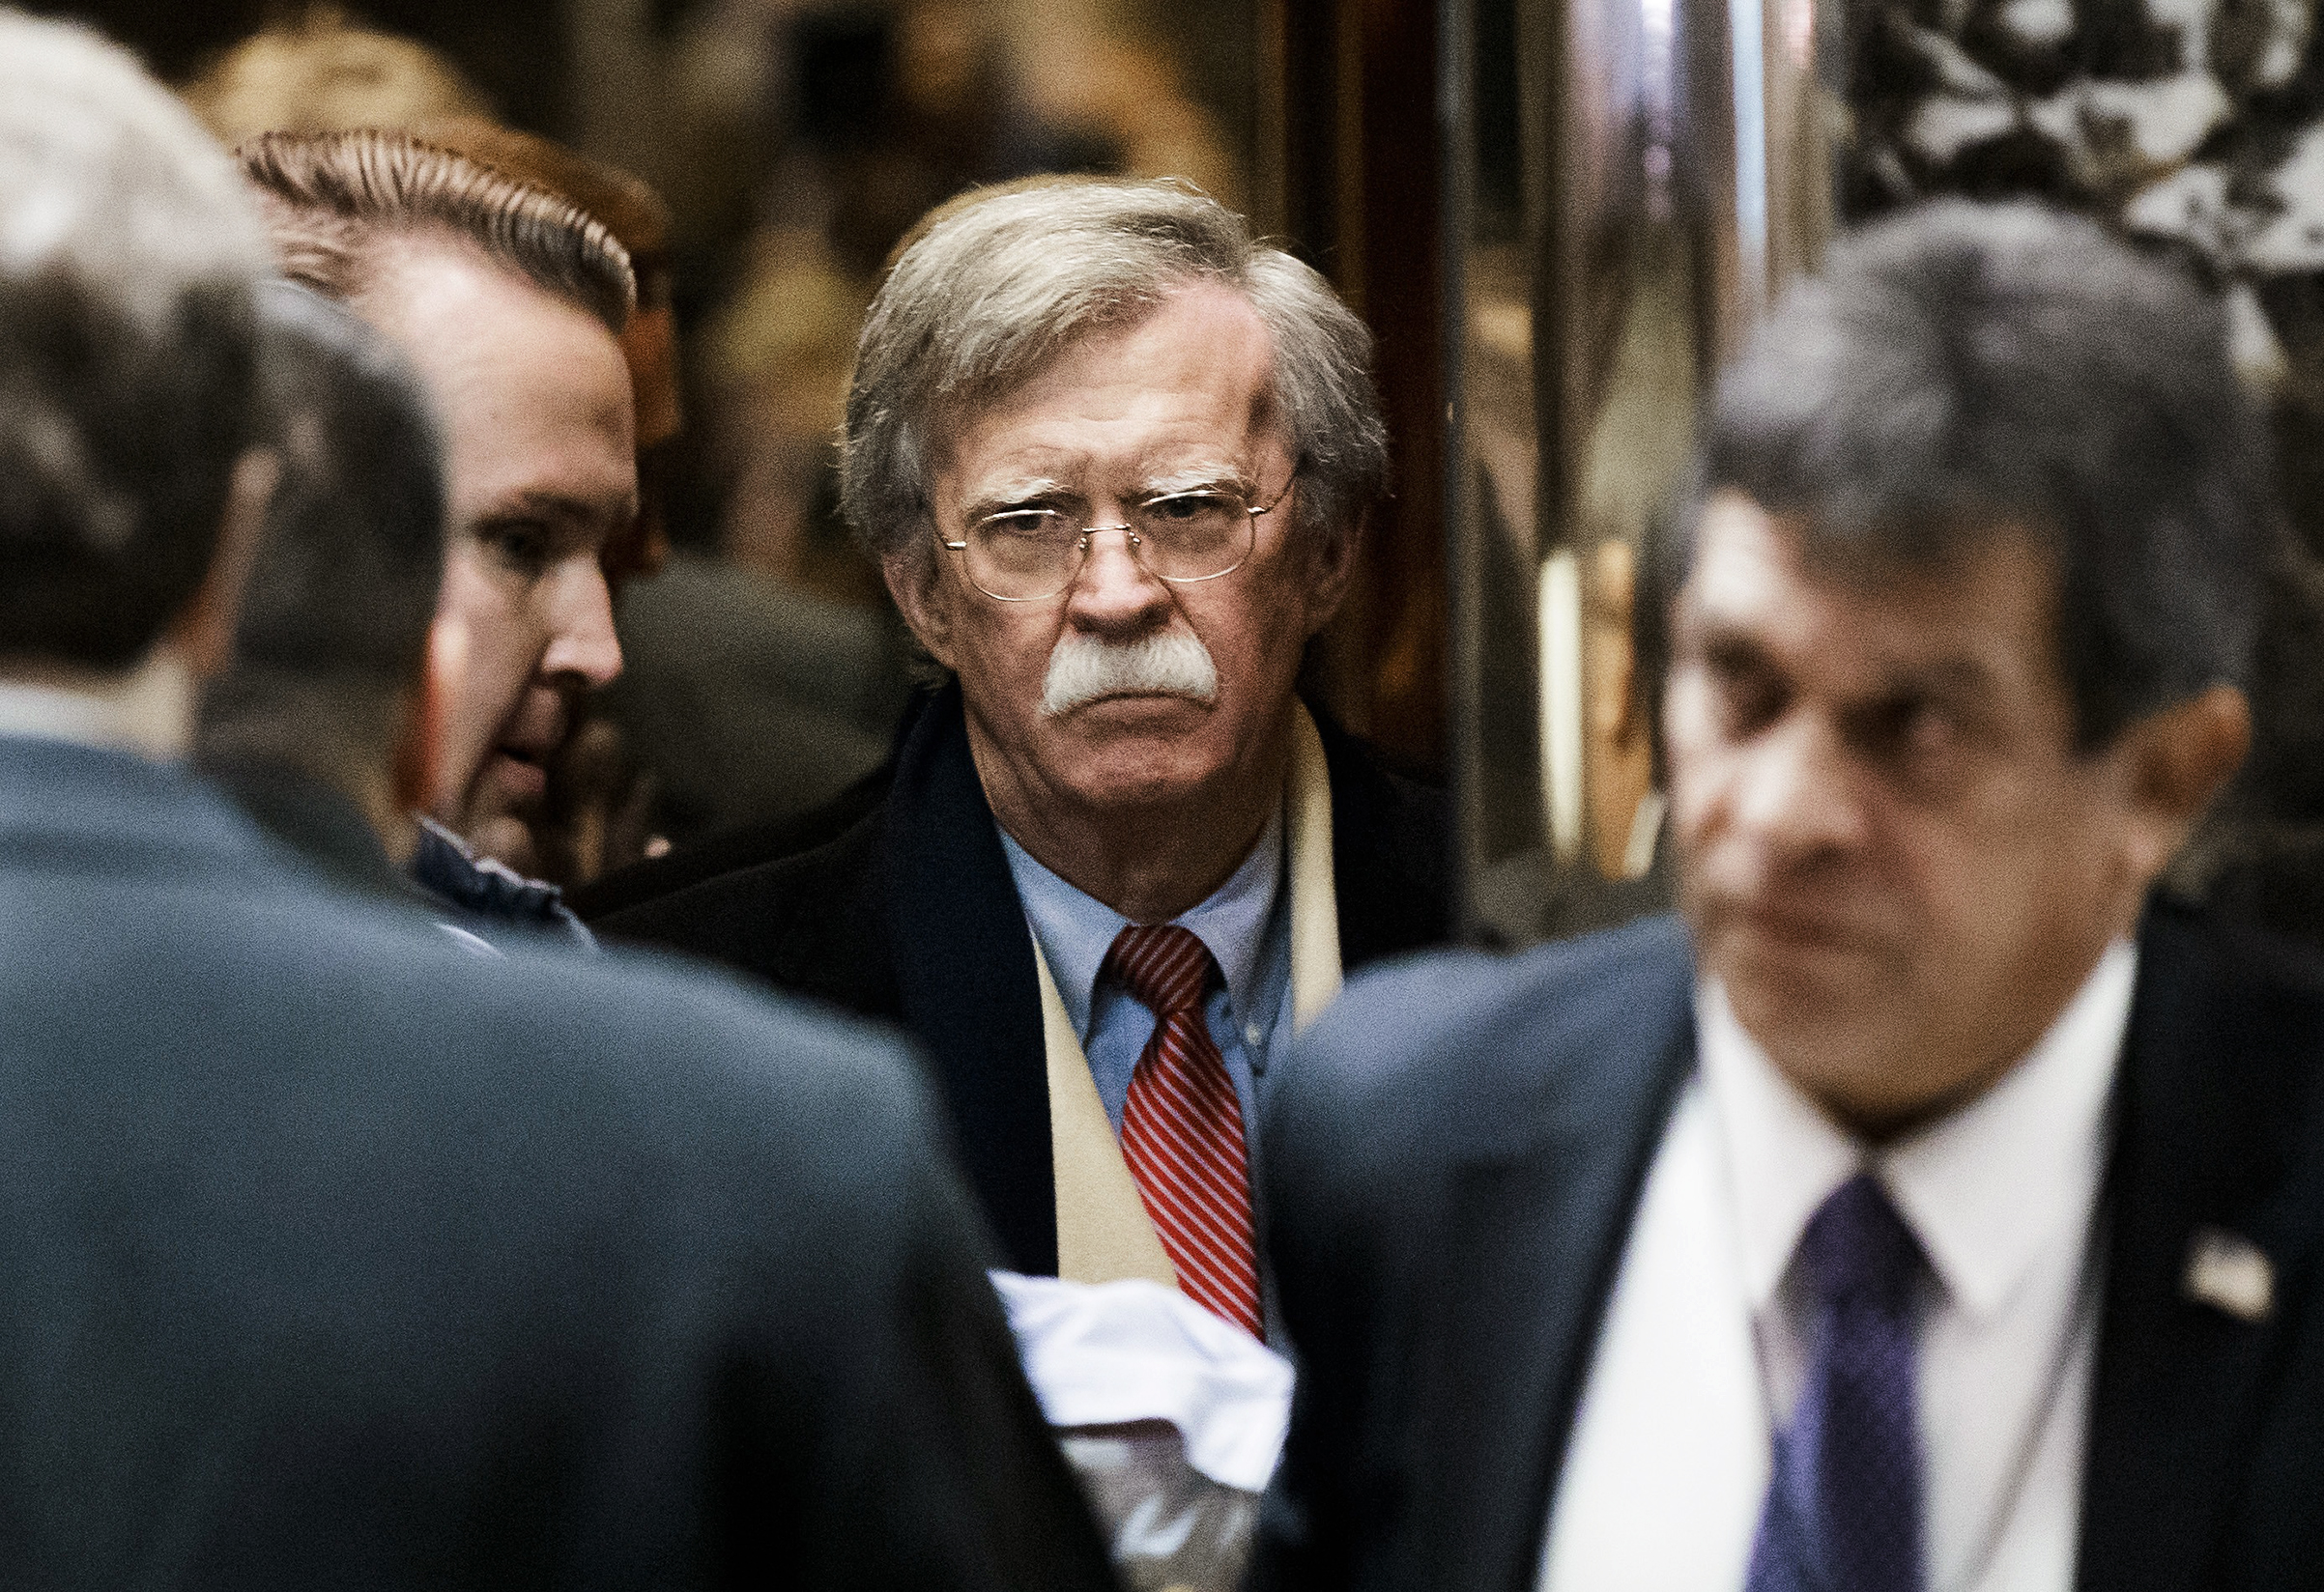 Bolton, former U.S. ambassador to the U.N., is slated to become Trump's third National Security Adviser in 15 months when he begins April9